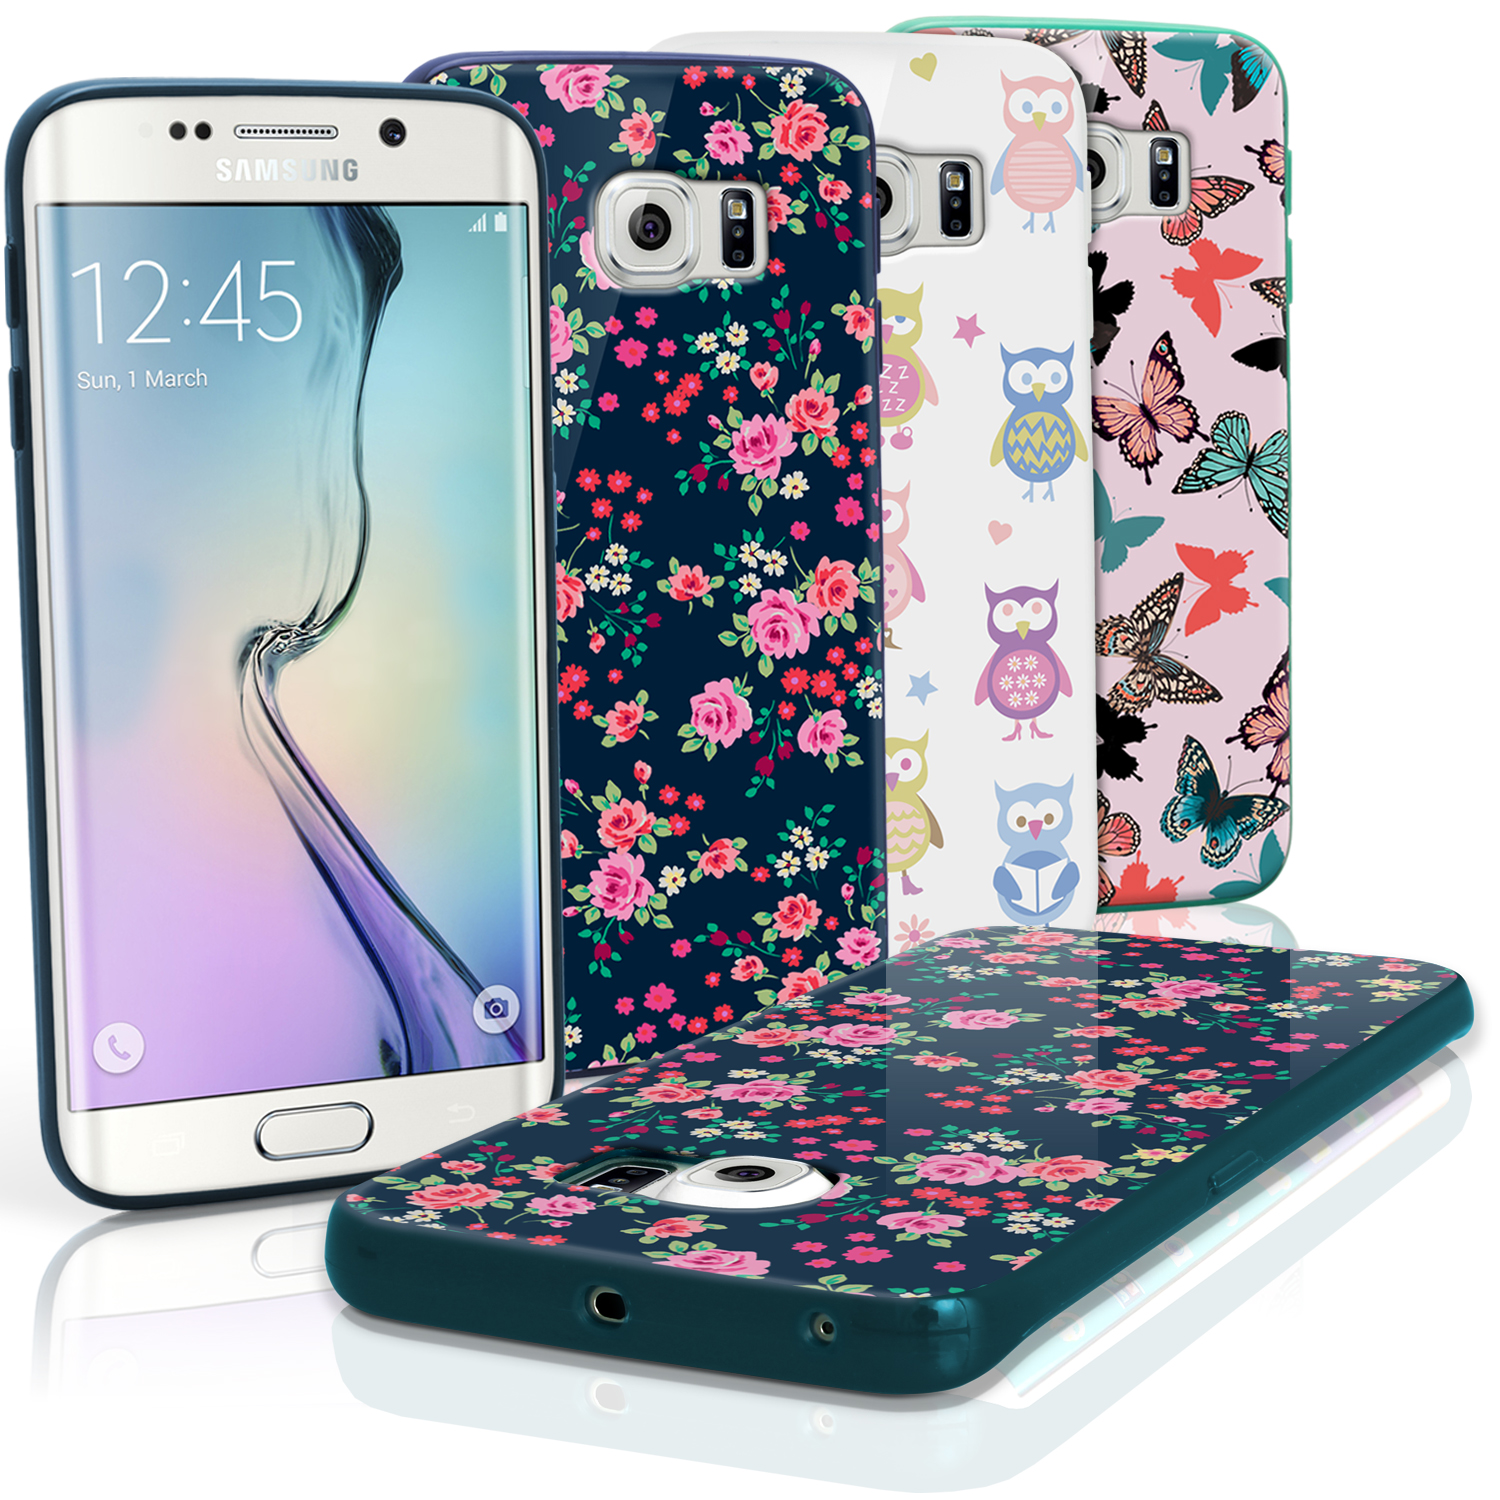 Glossy Print TPU Gel Case for Samsung Galaxy S6 Edge SM G925 Skin Soft Cover